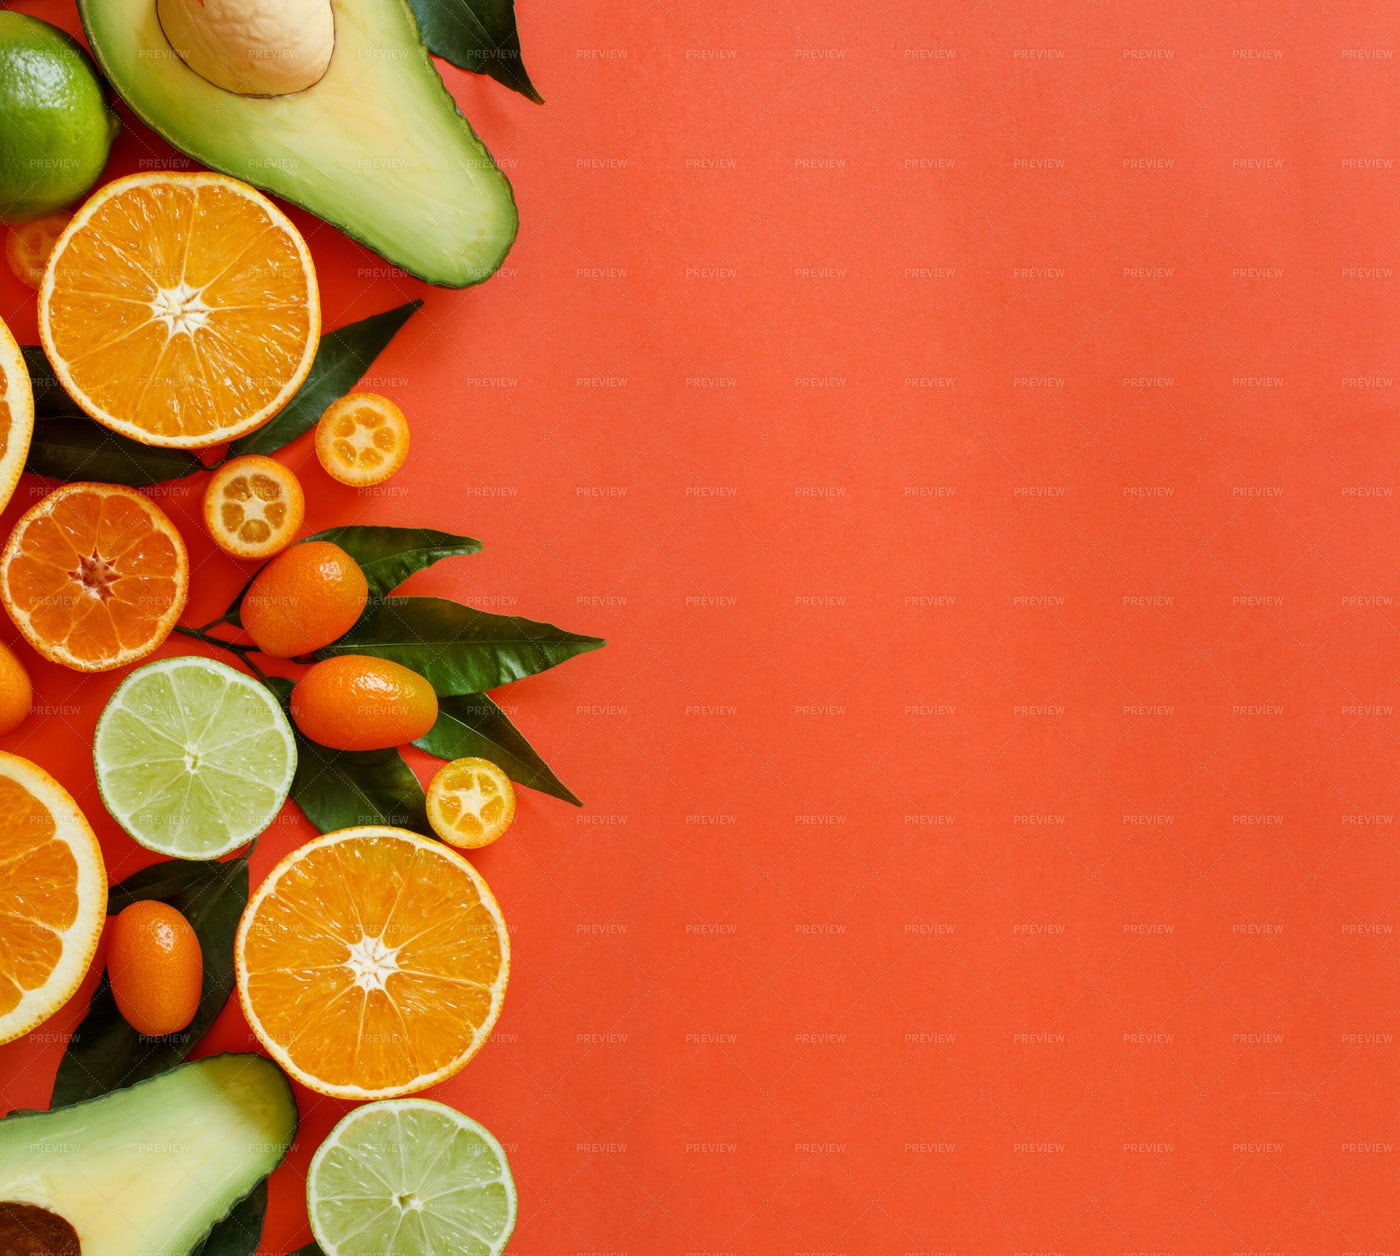 Citrus Fruits On Red: Stock Photos